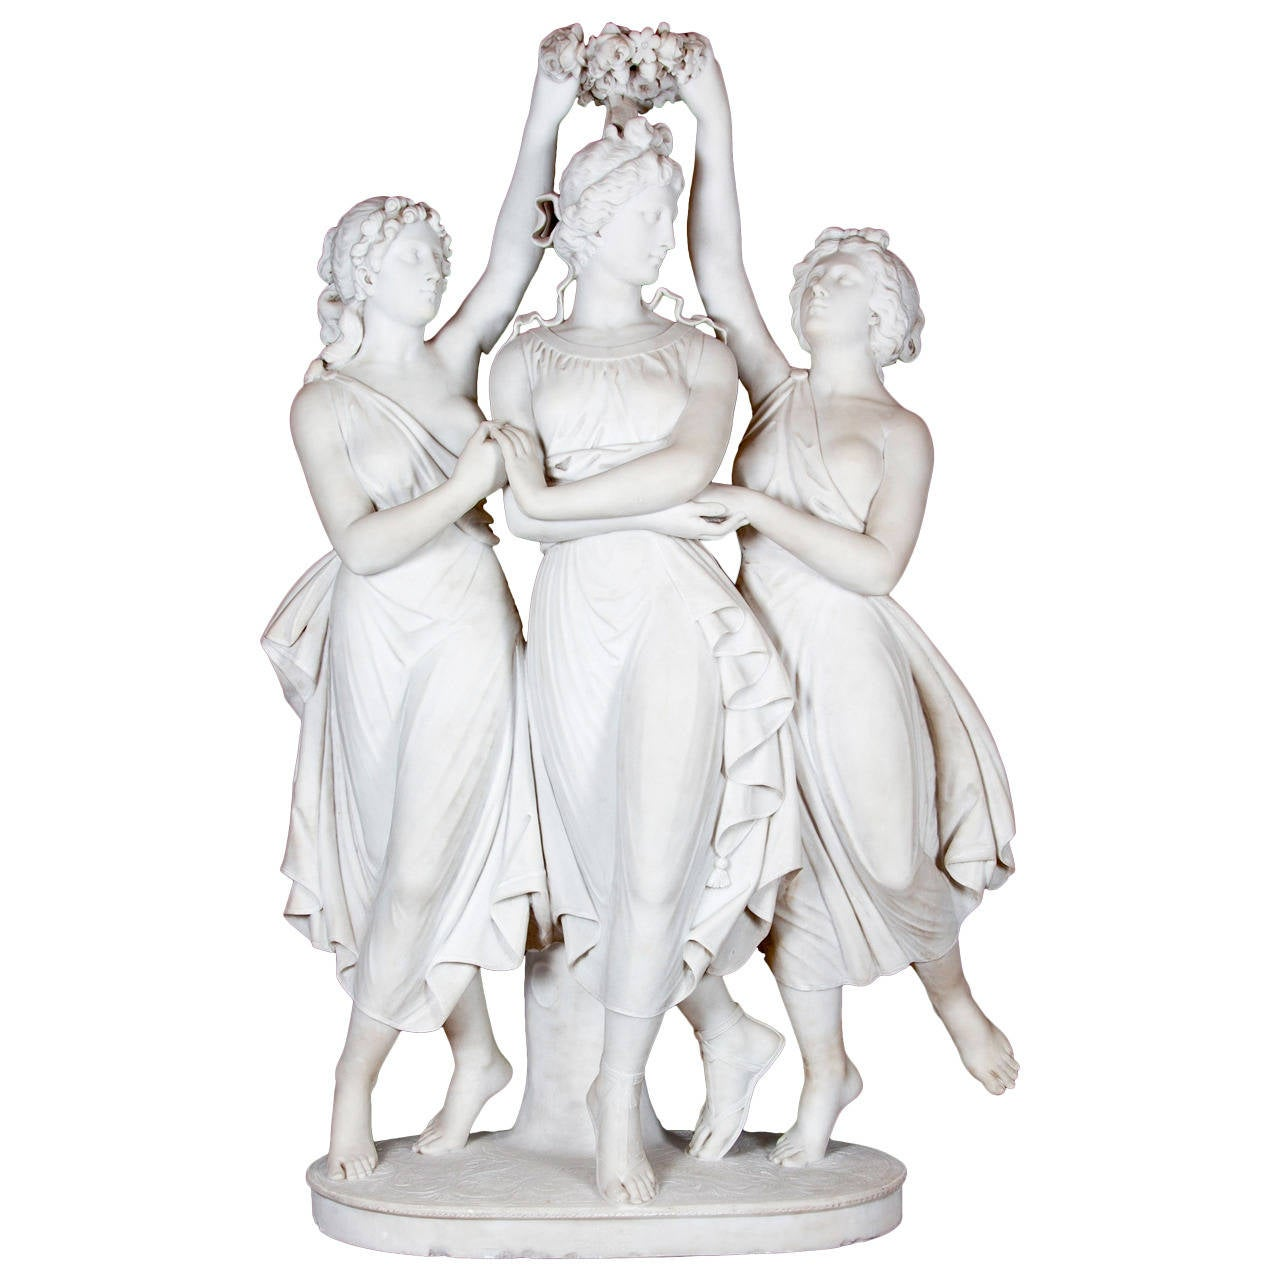 Marble Sculpture of the Three Graces Crowning Venus by Antonio Frilli